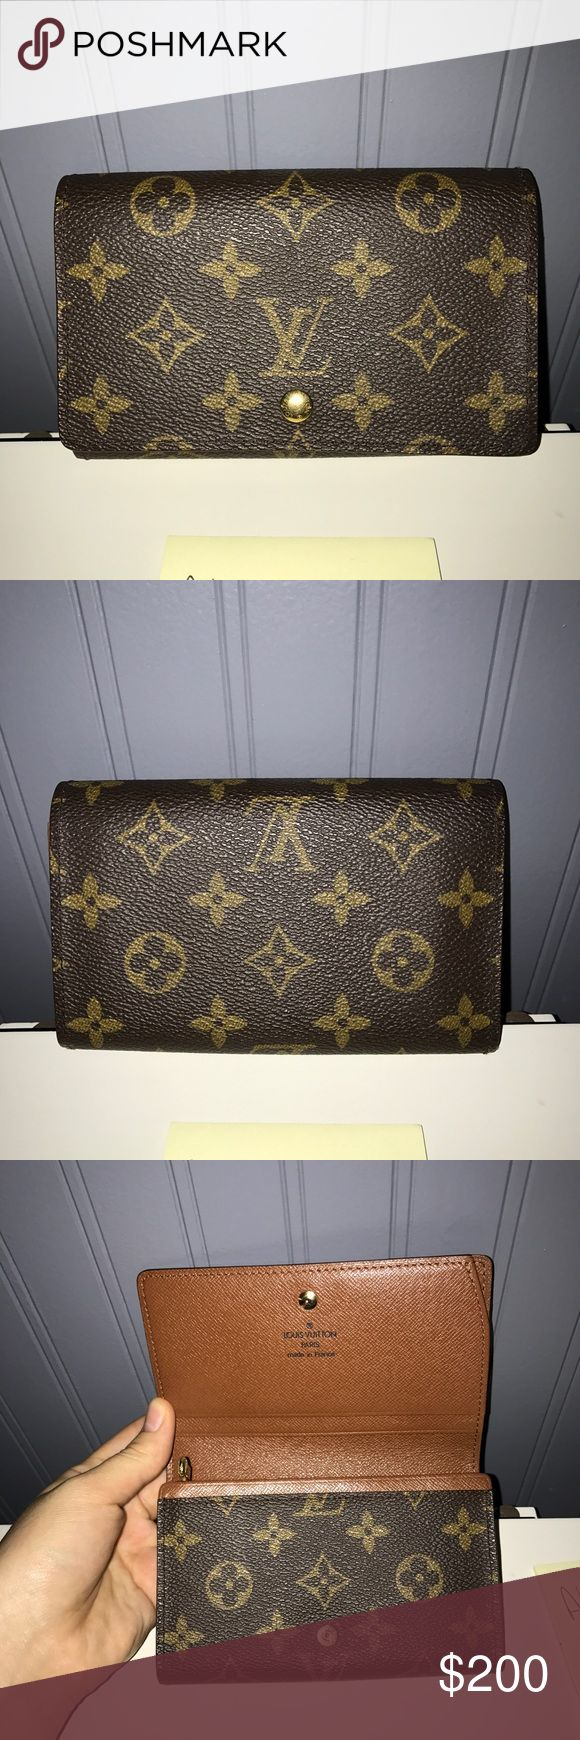 Louis Vuitton wallet 💋Louis Vuitton Porte Monnaie Wallet💋 -Good used condition!  -The pockets have peeling to them!  -zipper is smooth!  -Canvas is in excellent condition! Louis Vuitton Bags Wallets